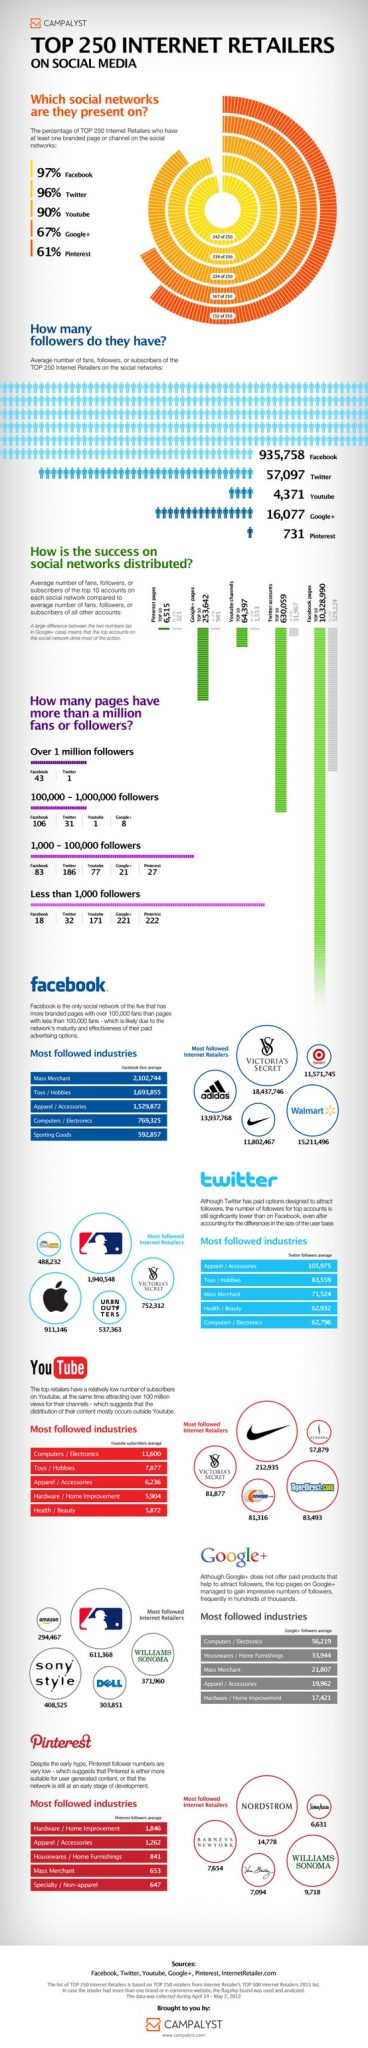 Social Media Retail Infographic